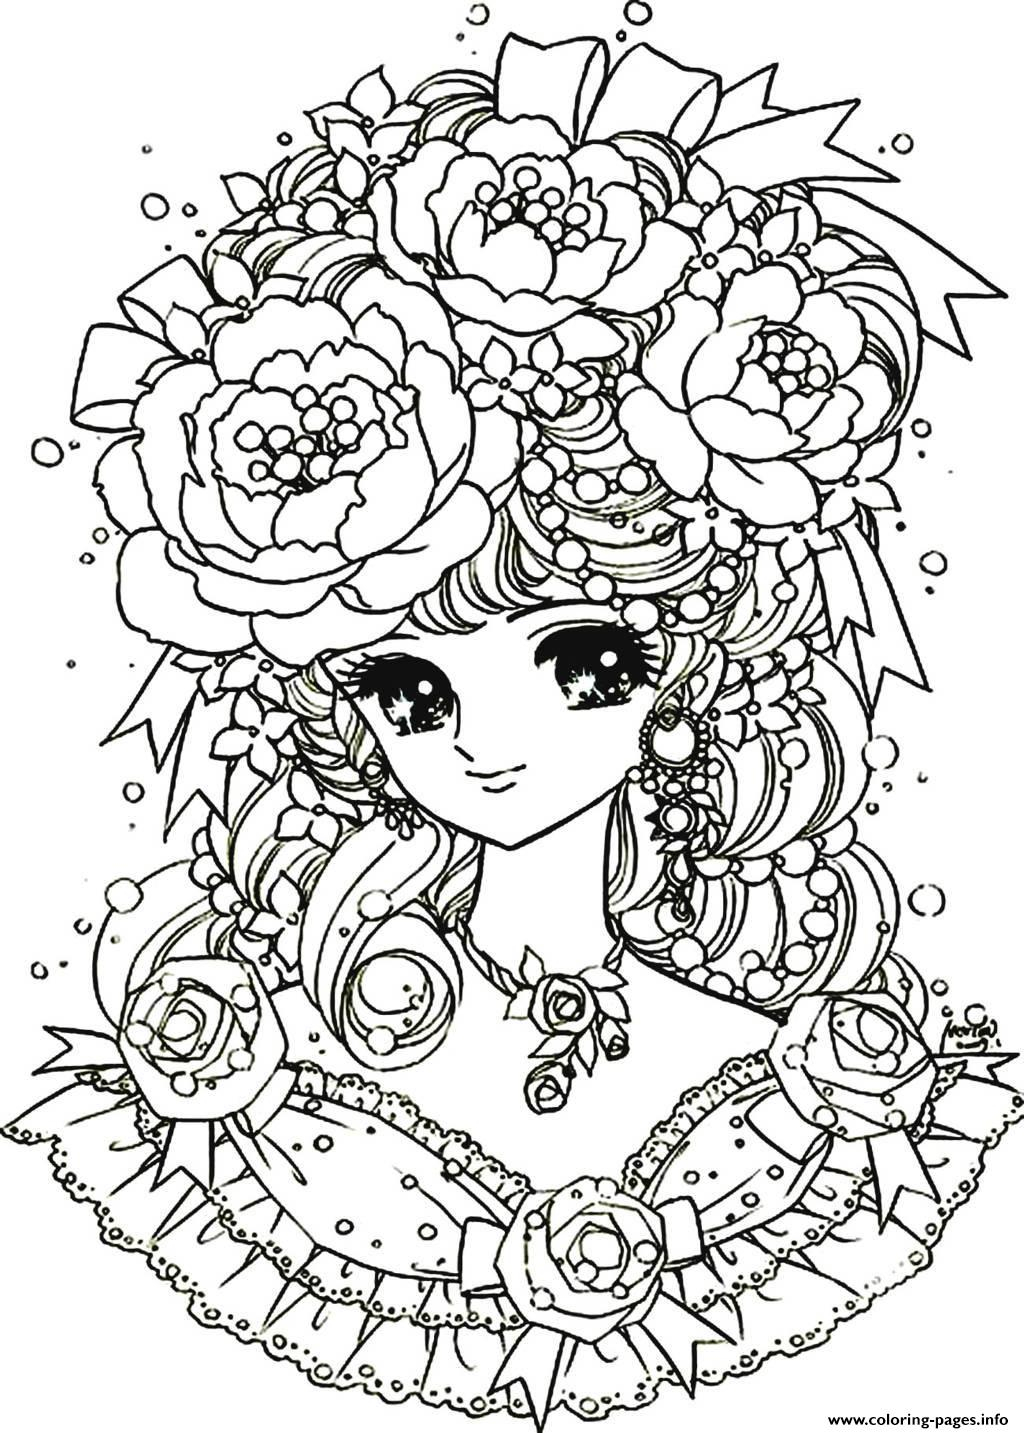 Flower Coloring Pages Download Free Coloring Sheets